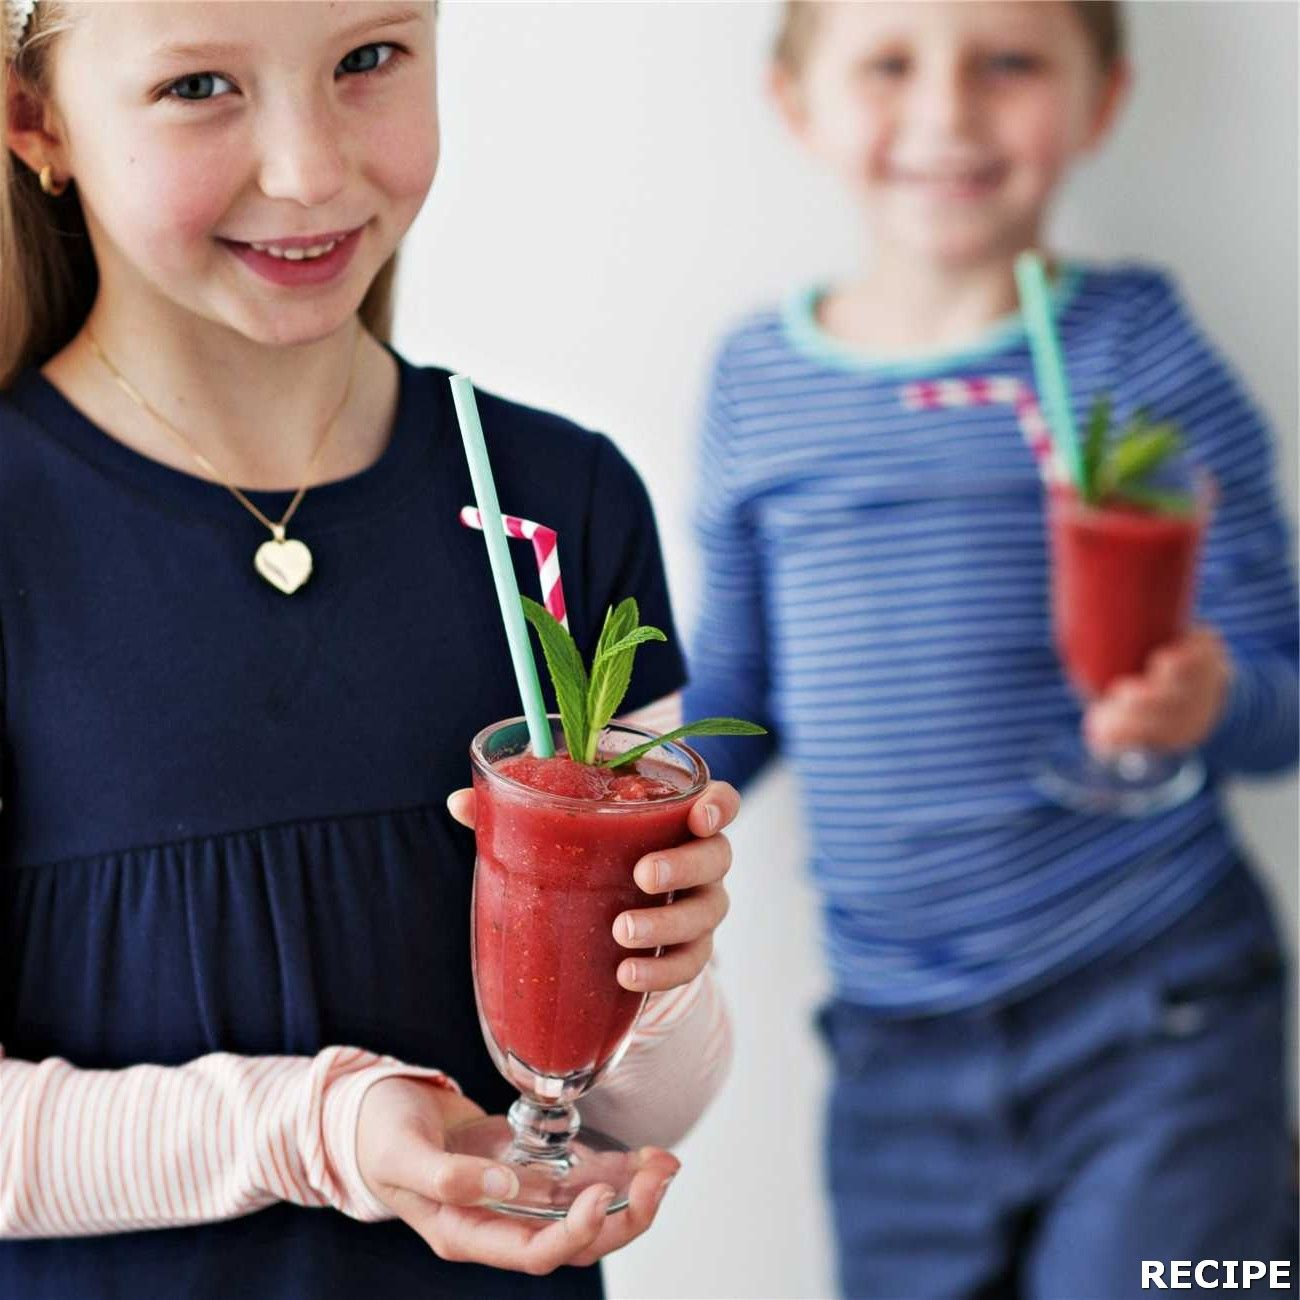 Watermelon Slushie Recipe : Directions 1. Process watermelon flesh with fresh or frozen berries, 2 cups of ice, apple or cranberry juice and some mint leaves until smooth...